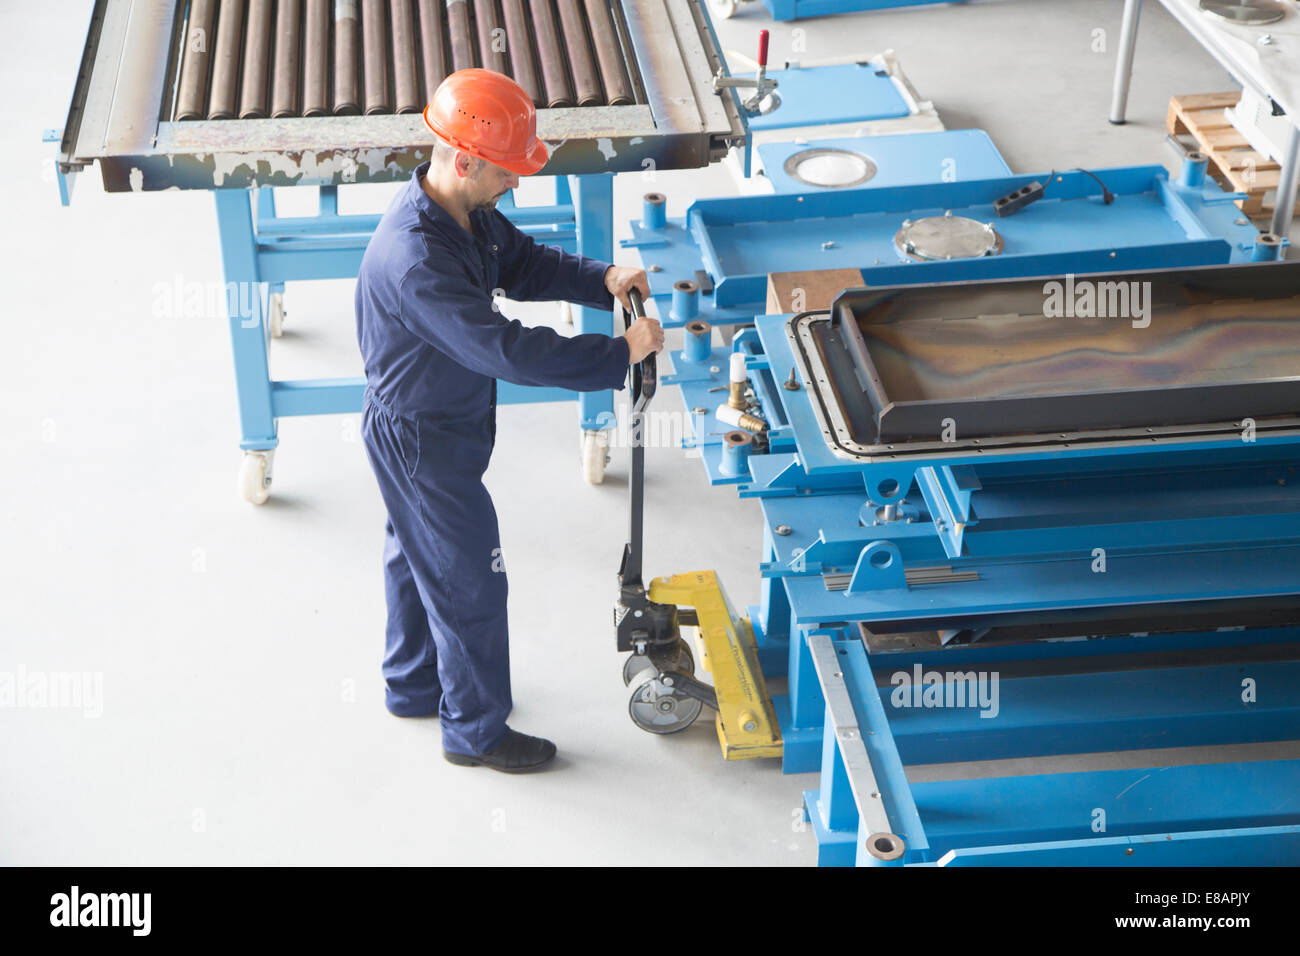 Worker using manual pallet jack in industrial plant - Stock Image